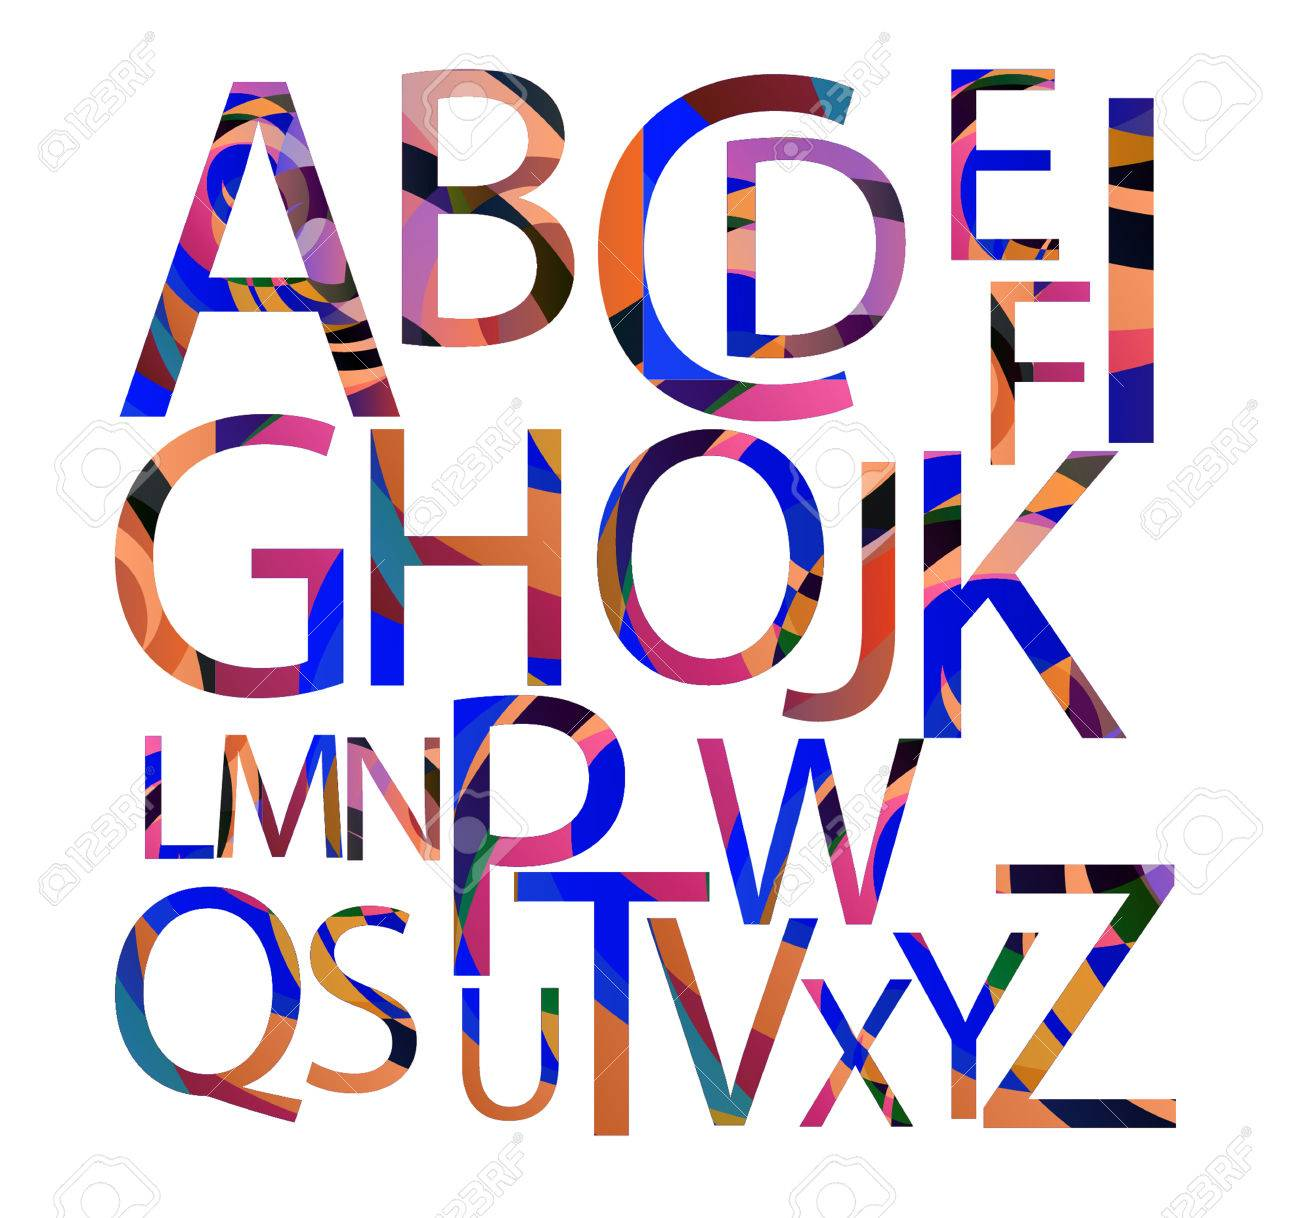 The Letters Of The Alphabet Painted In The Style Of Spray Paint